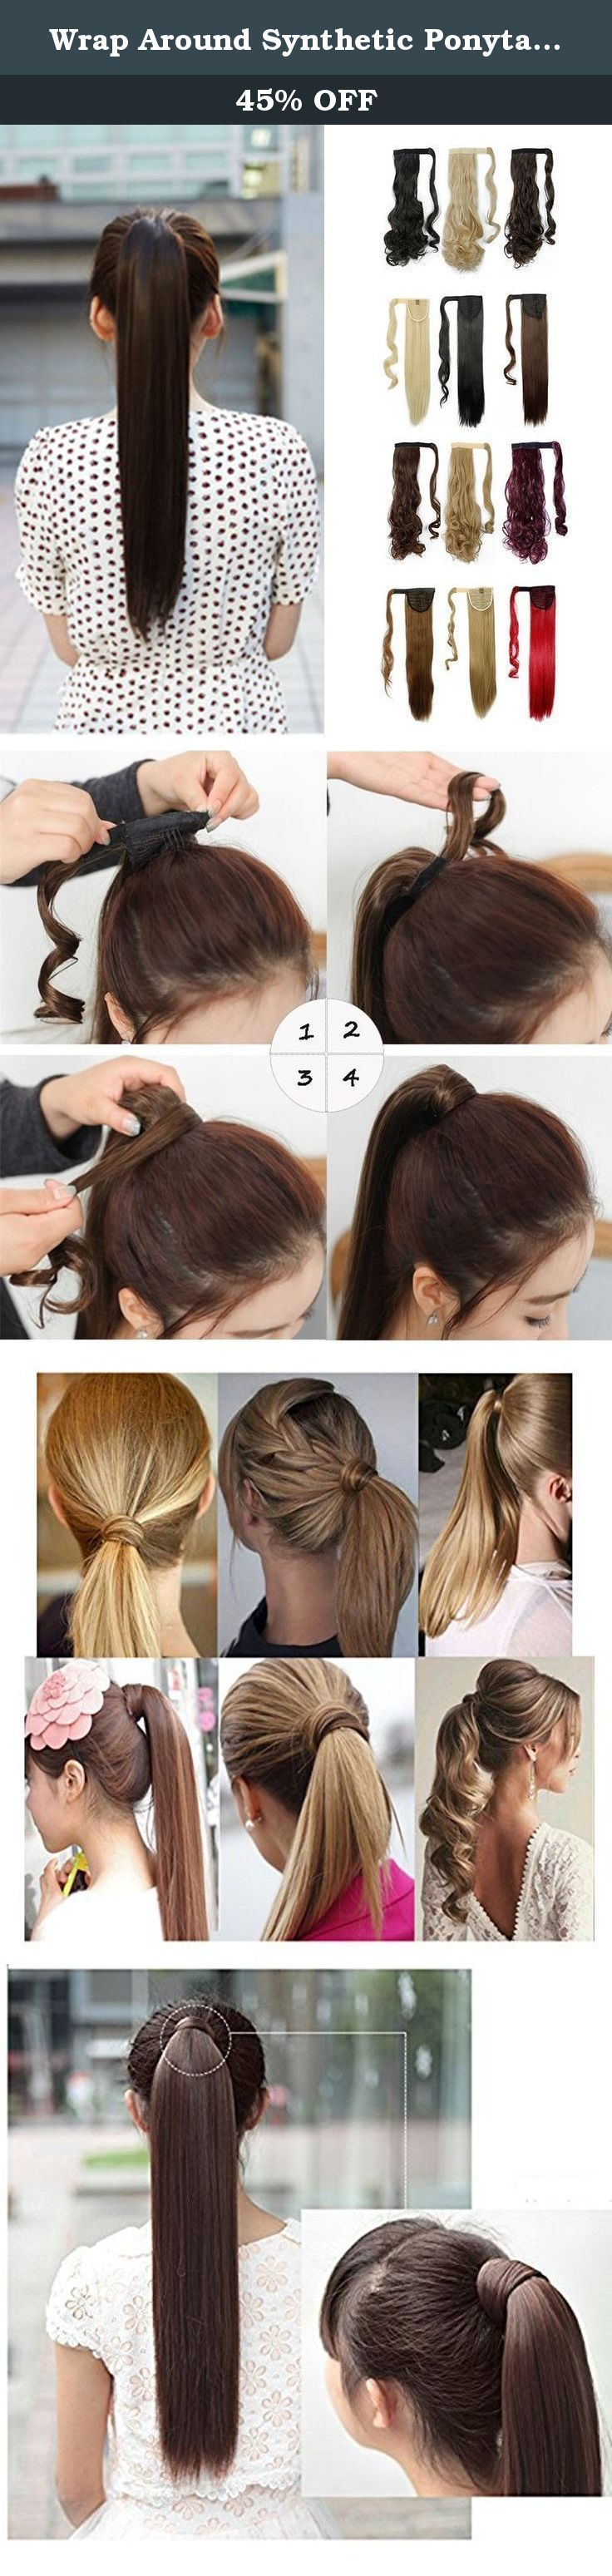 Wrap Around Synthetic Ponytail One Piece Heat Resistant Magic Paste Pony Tail Long Straight Soft Silky for Women Lady Girls 23'' / 23 inch (dark brown). Product information Materials: Kanekalon Fiber from Japan(also known as KK wire) Length: 23inch without stretching Suitable Occasions: daily use,Halloween,cosplay,club,concerts,costume,theme parties,bachelorette party,weddings,dating,conventions,masquerades,prom,evening out,carnival,April Fool's Day and any other occasions. Also will be…